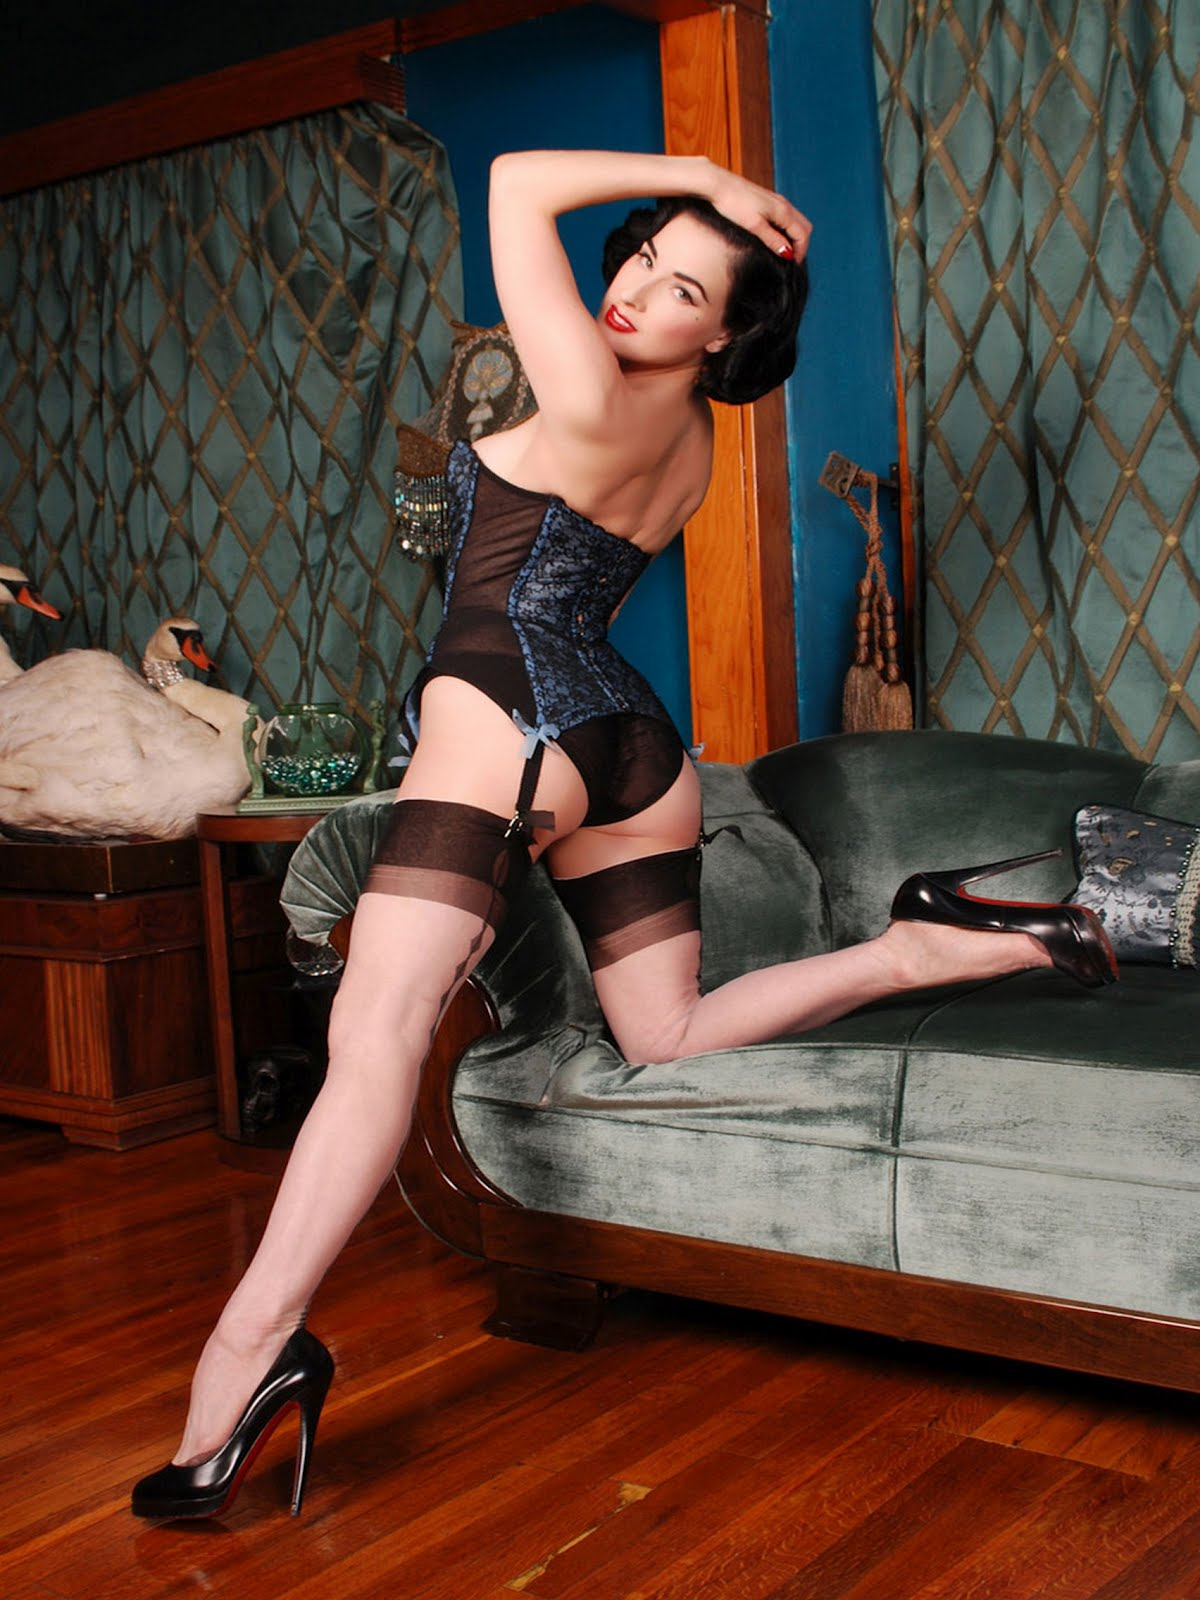 Dita Von Teese Secrets Photoshoot In Lace